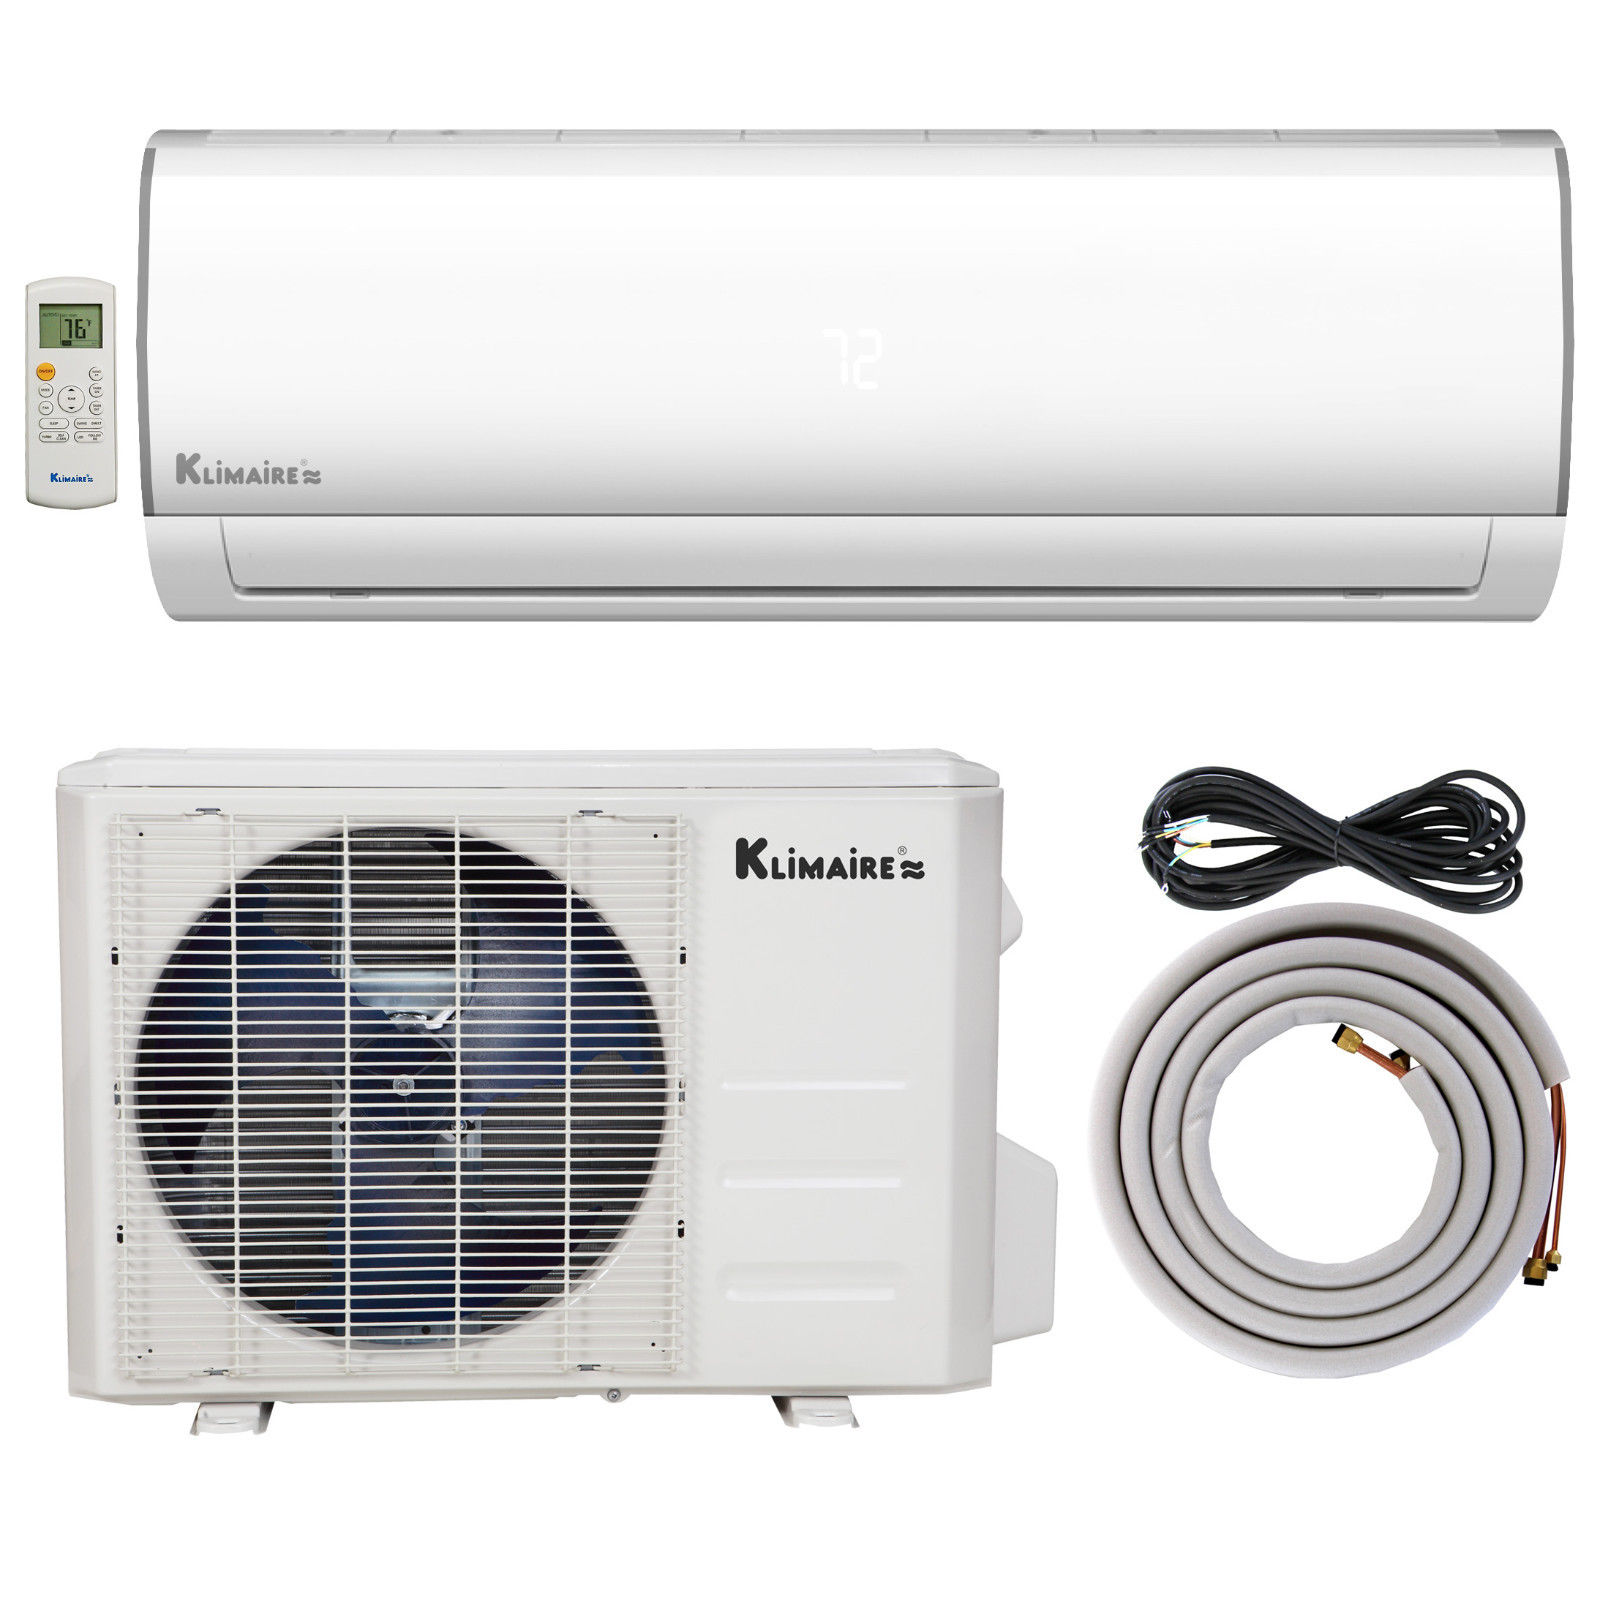 Best Ductless Air Conditionersbest Ductless Air Conditioners